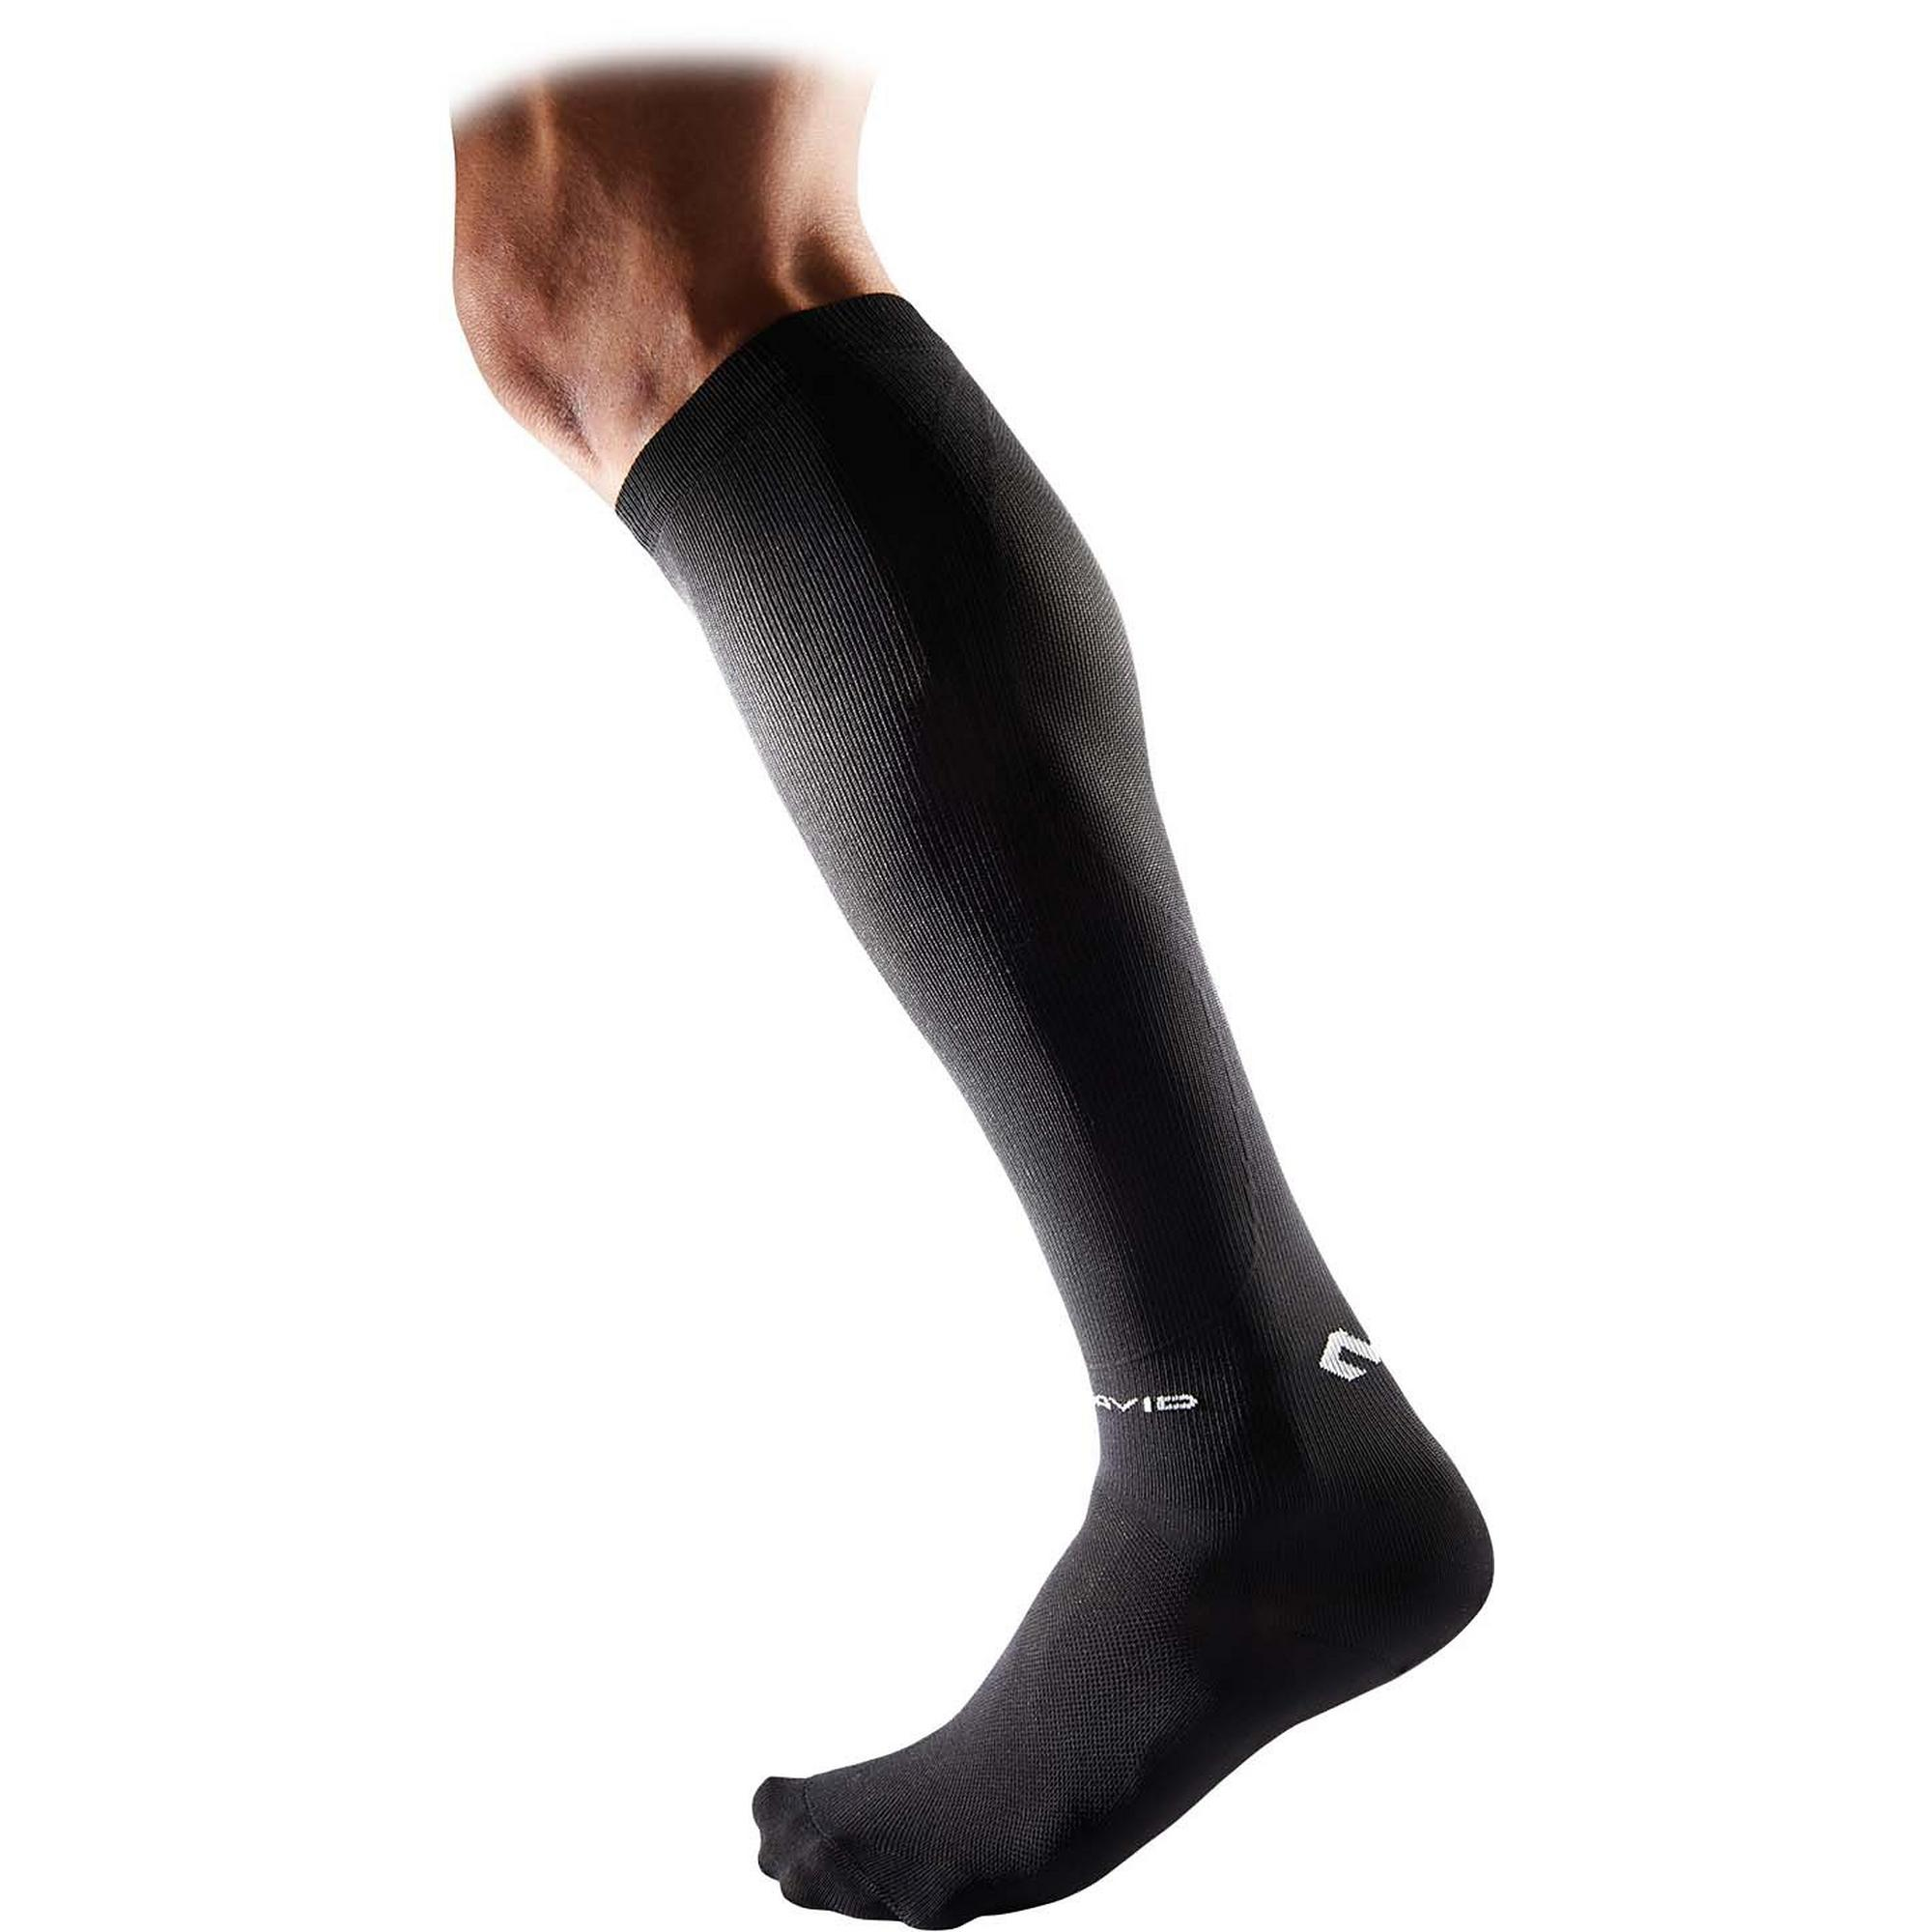 Elite Compression Socks